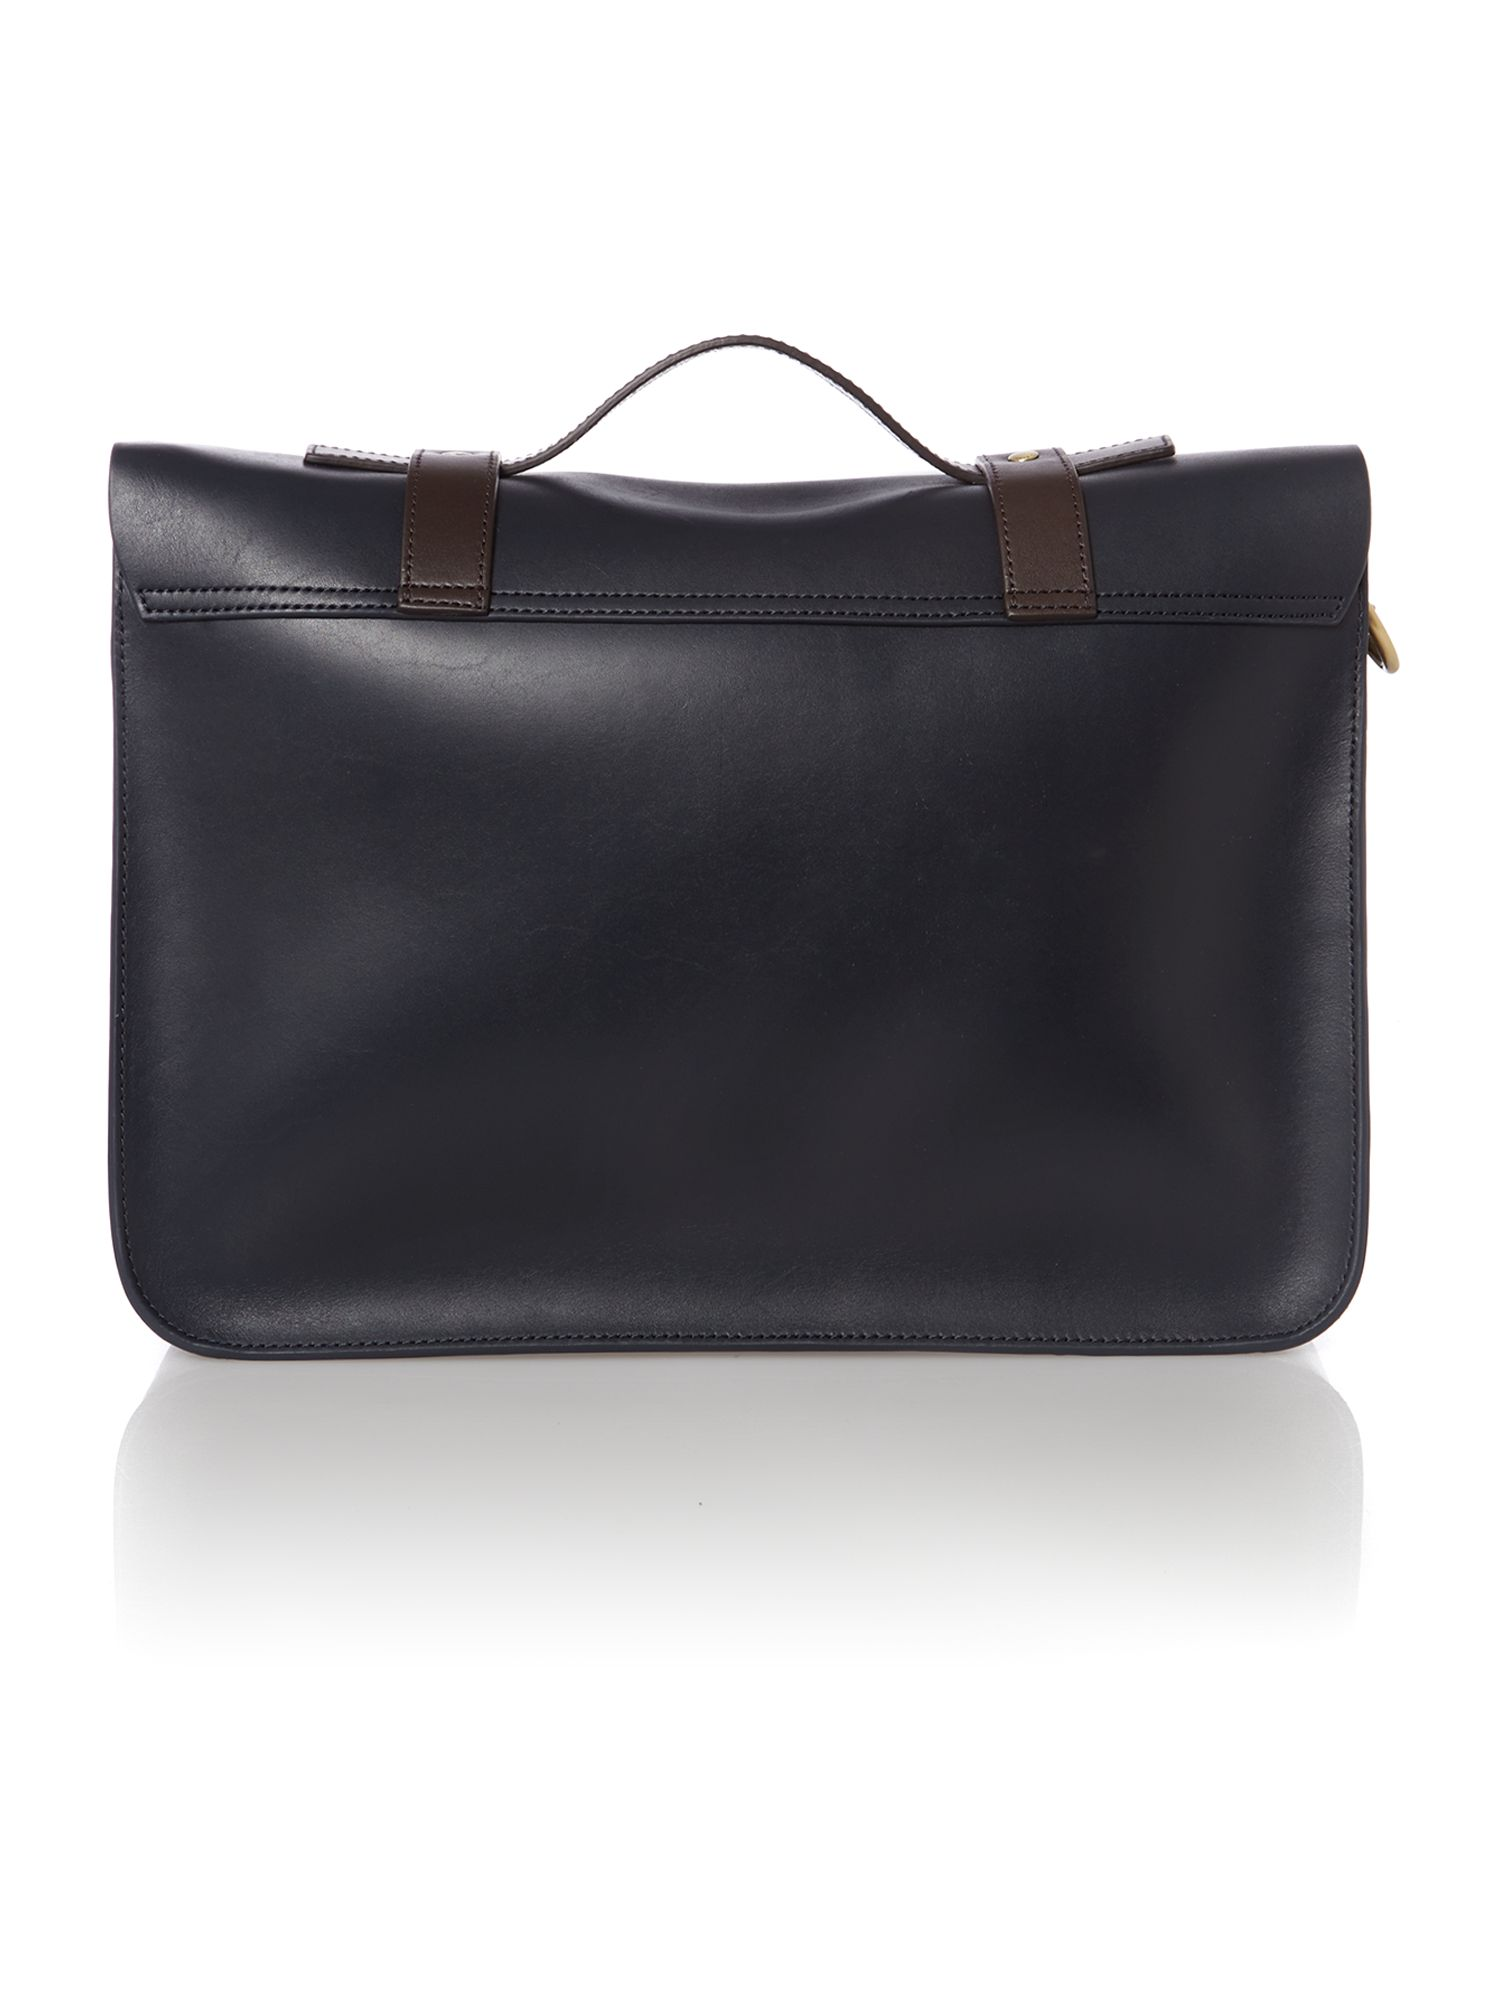 Leather satchel bag